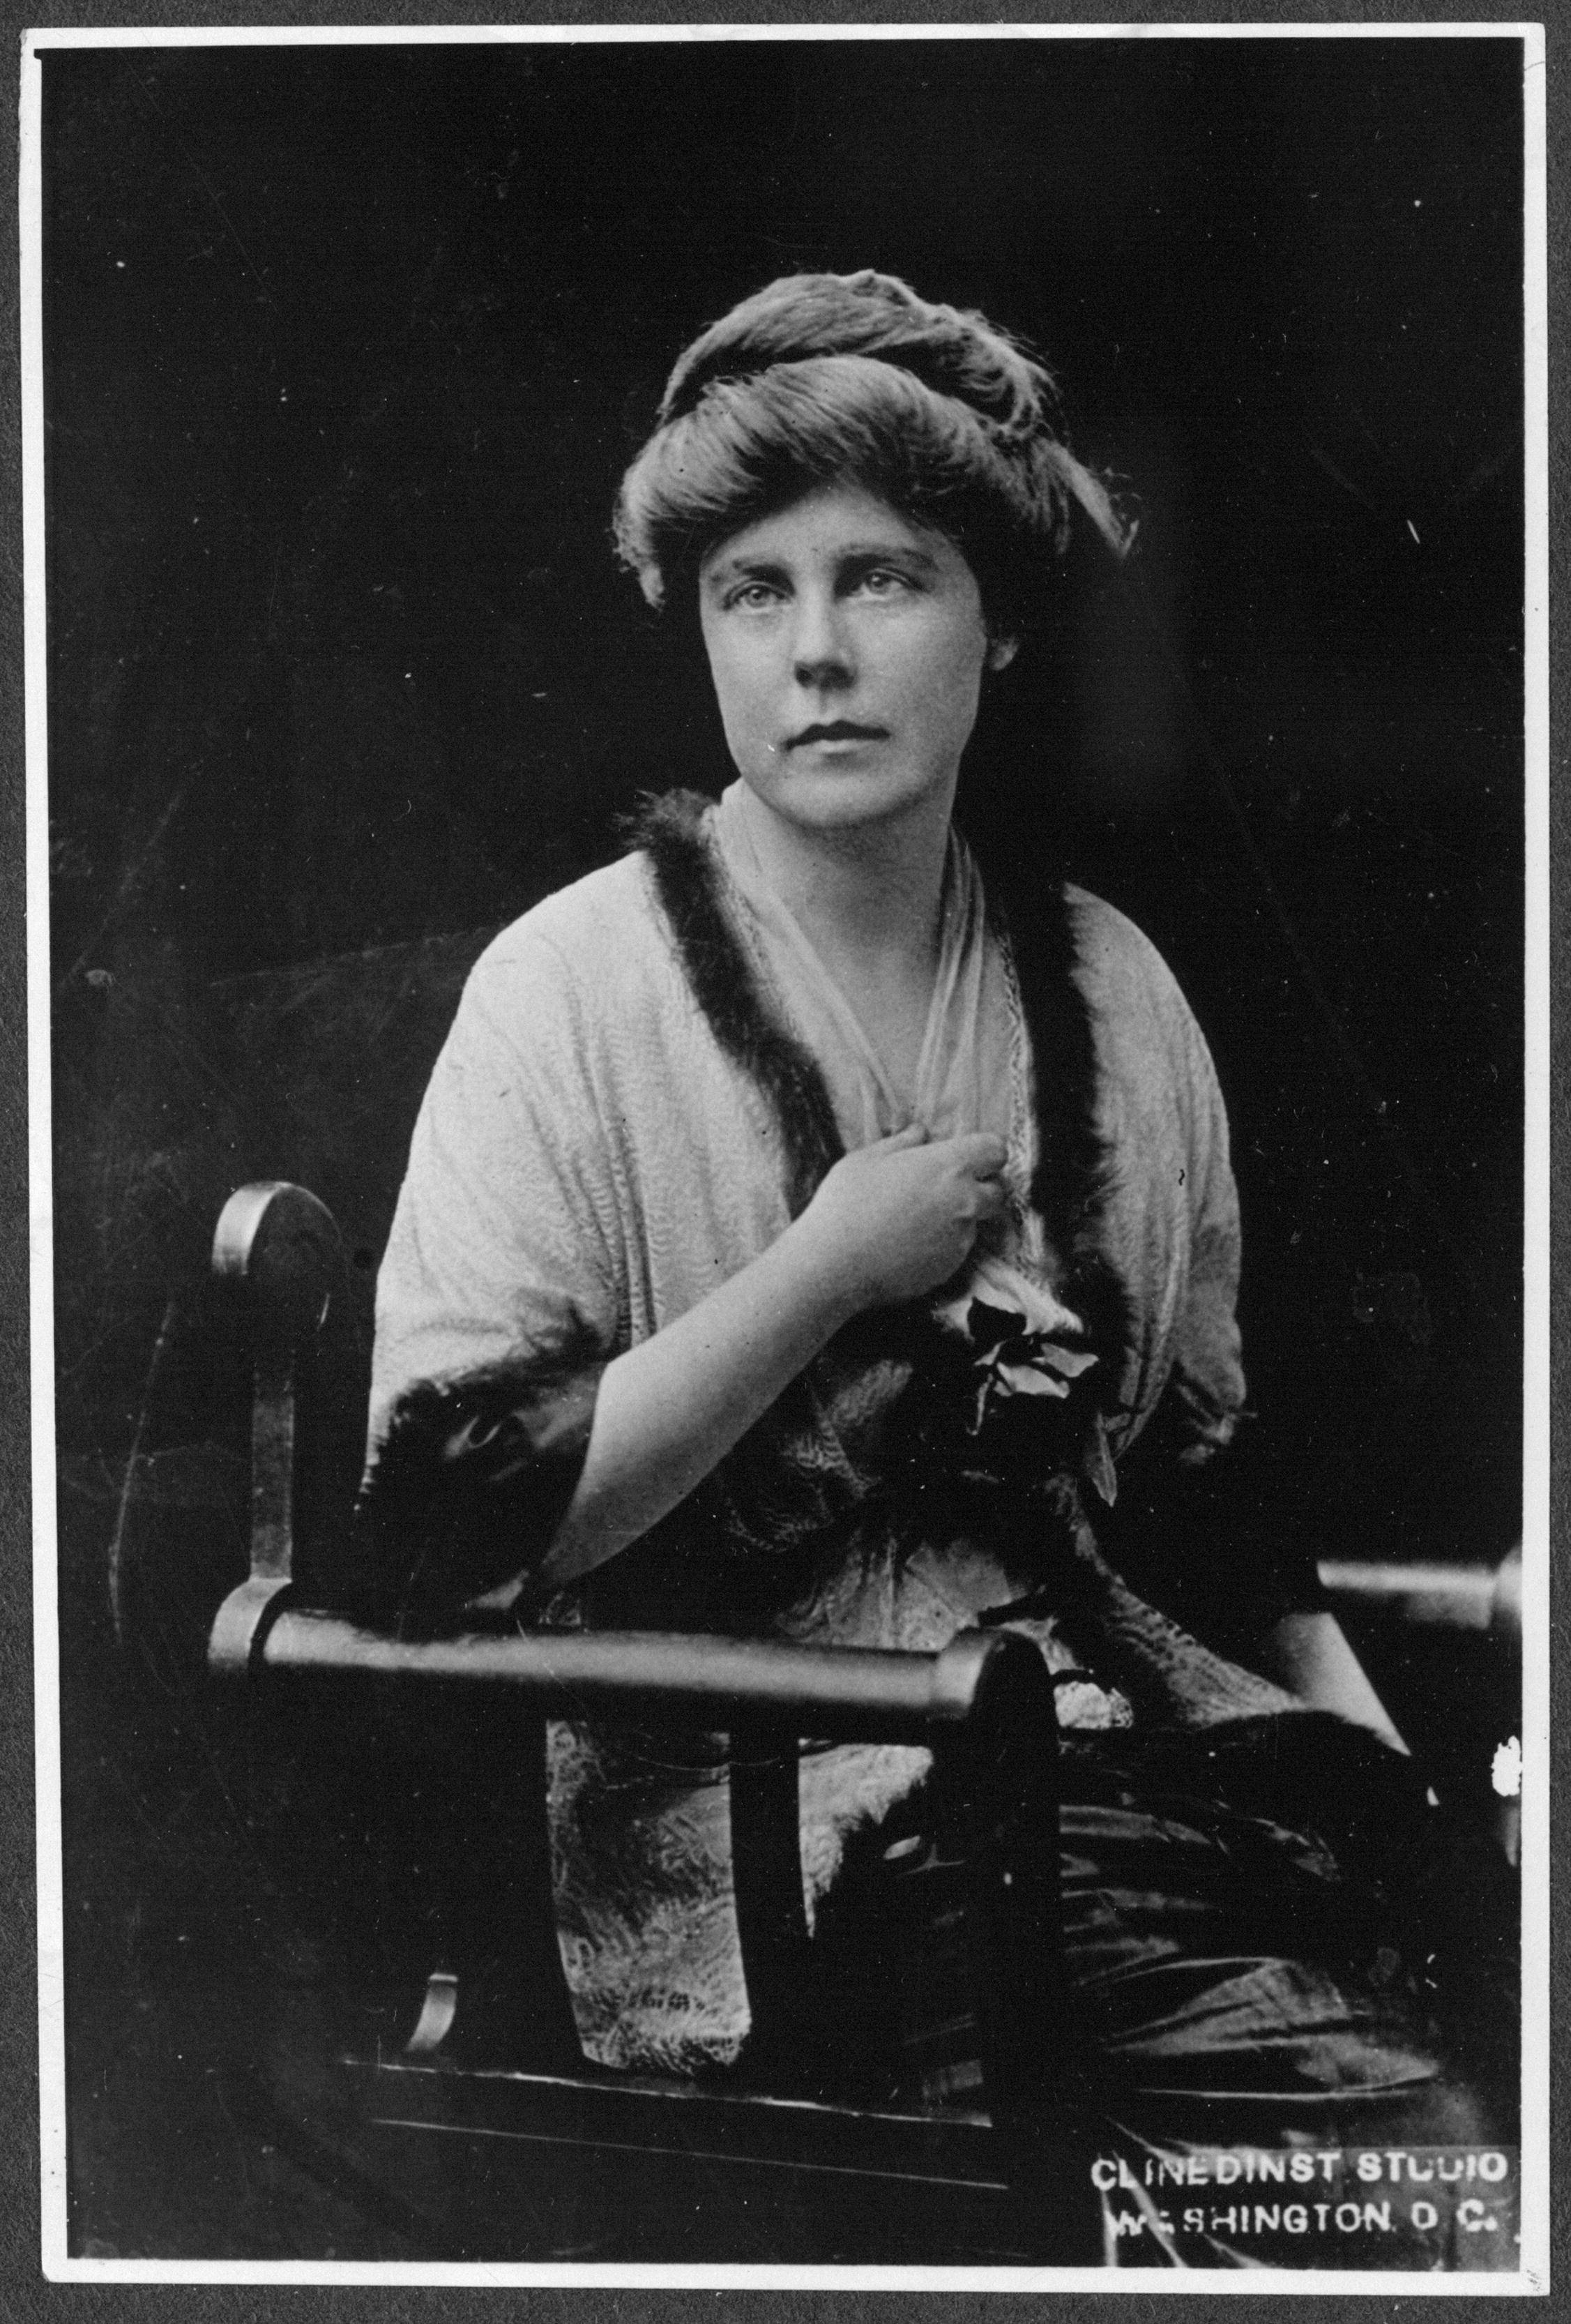 the role of lucy burns in helping women get the right to vote The library of congress | american memory women of protest: photographs from the records of the national woman's party tactics and techniques of the national woman's.